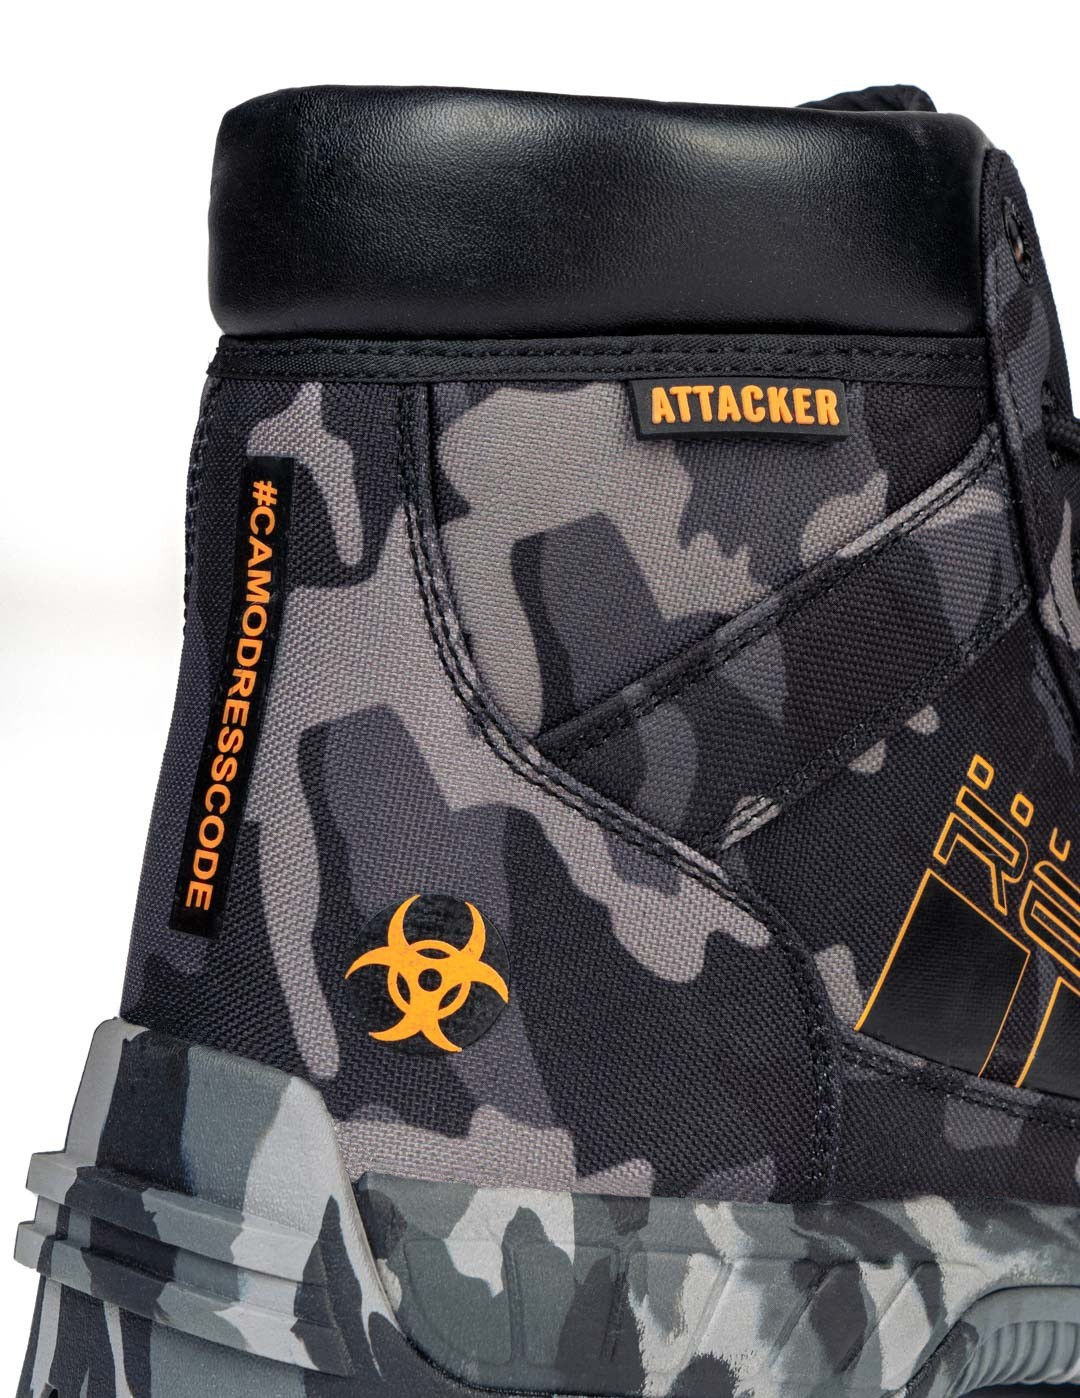 ATTACKER BIOHAZARD Tactical Boots